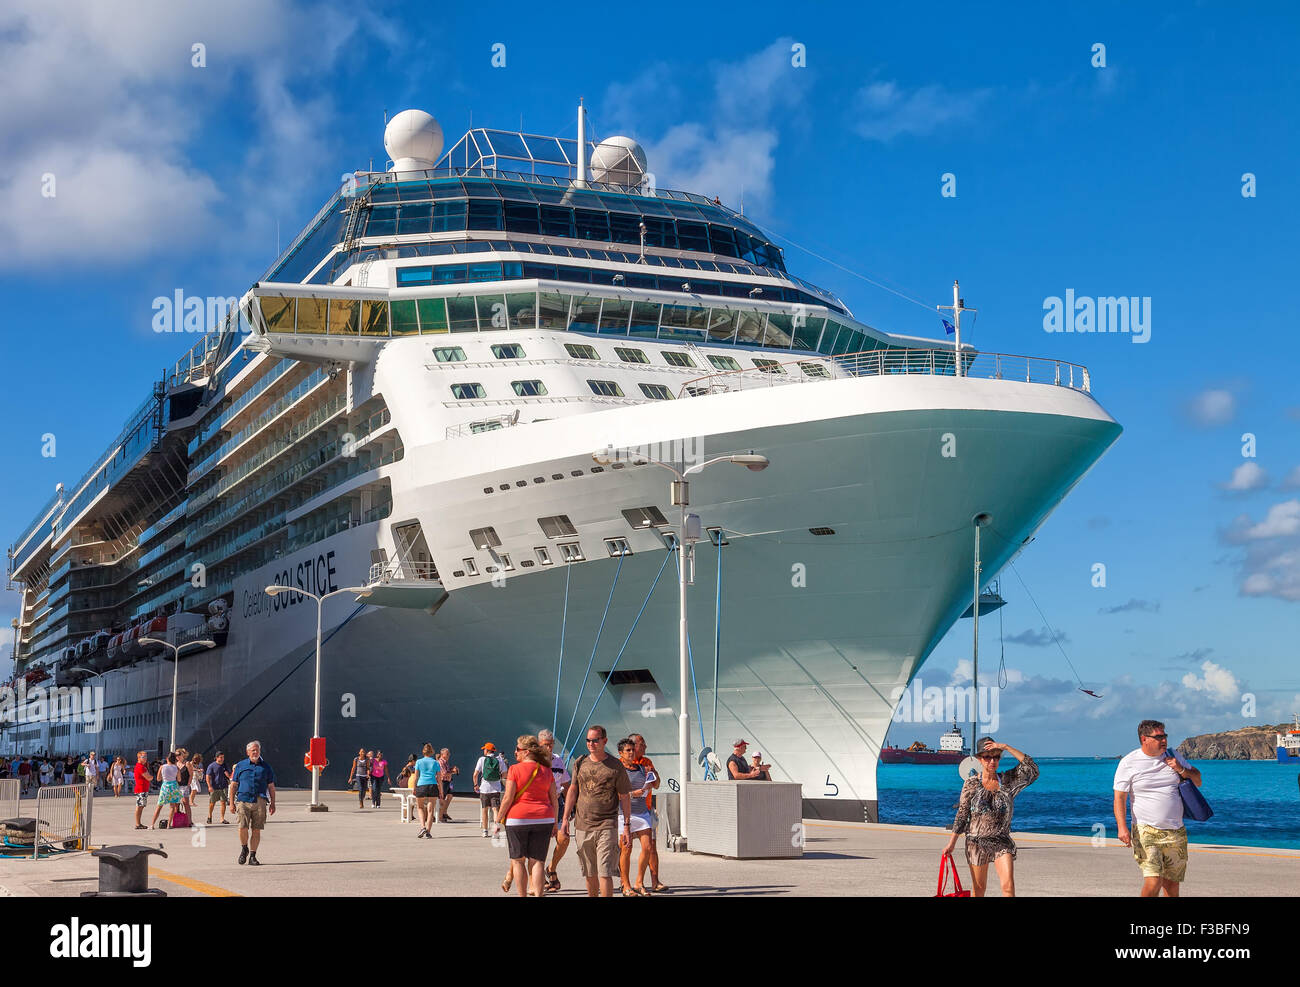 Cruise Ship Passengers Travel To And From Many Of The Cruise Ships - How many cruise ships are there